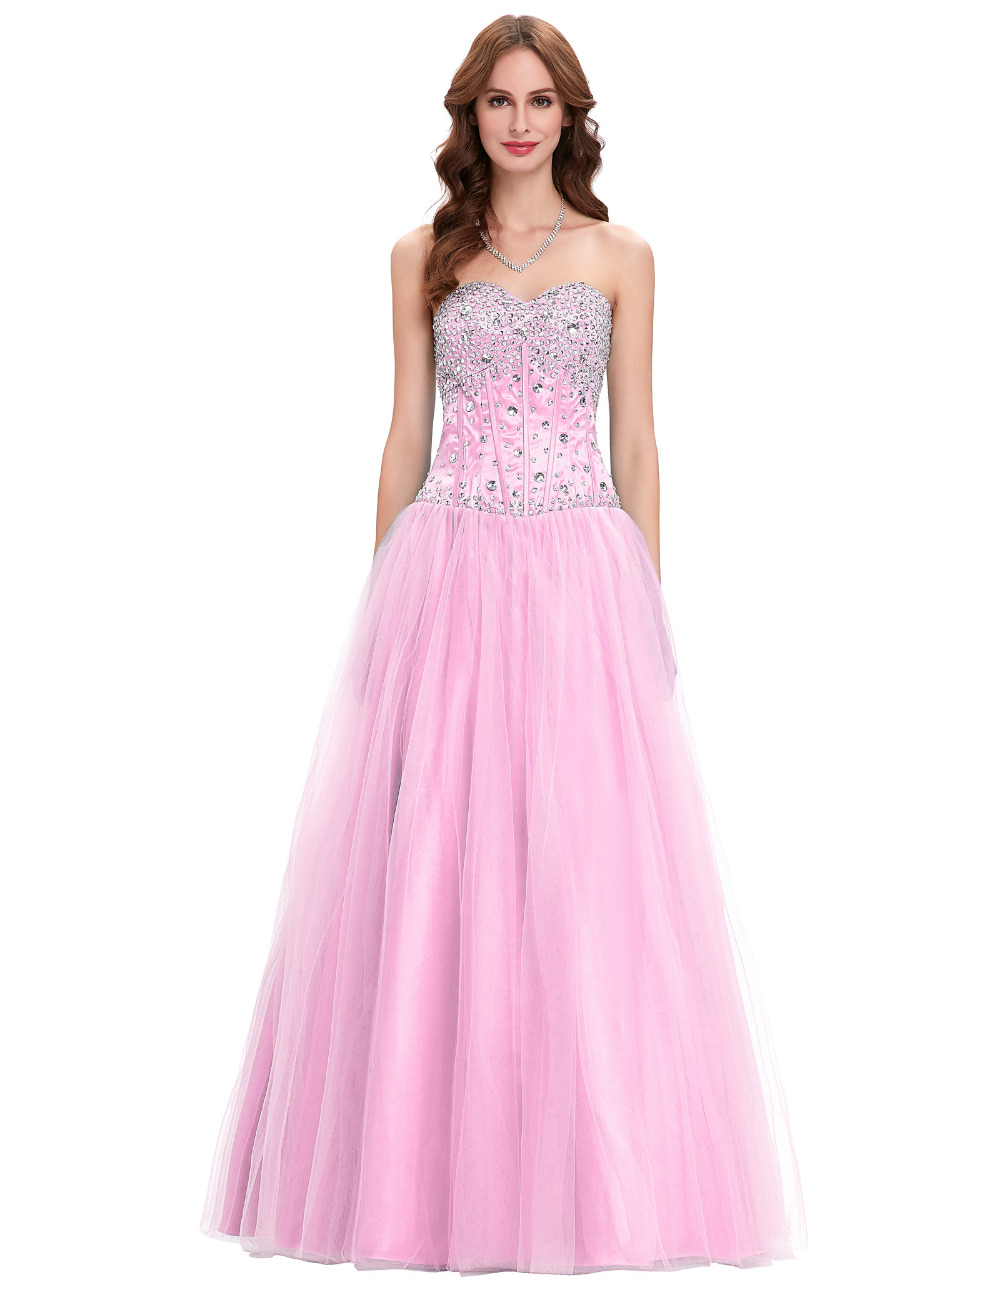 White junior bridesmaid dresses reviews online shopping white free shipping blue white pink bridesmaid dresses 2017 crystal tulle party dress for wedding junior ball gown bridesmaids dress ombrellifo Image collections